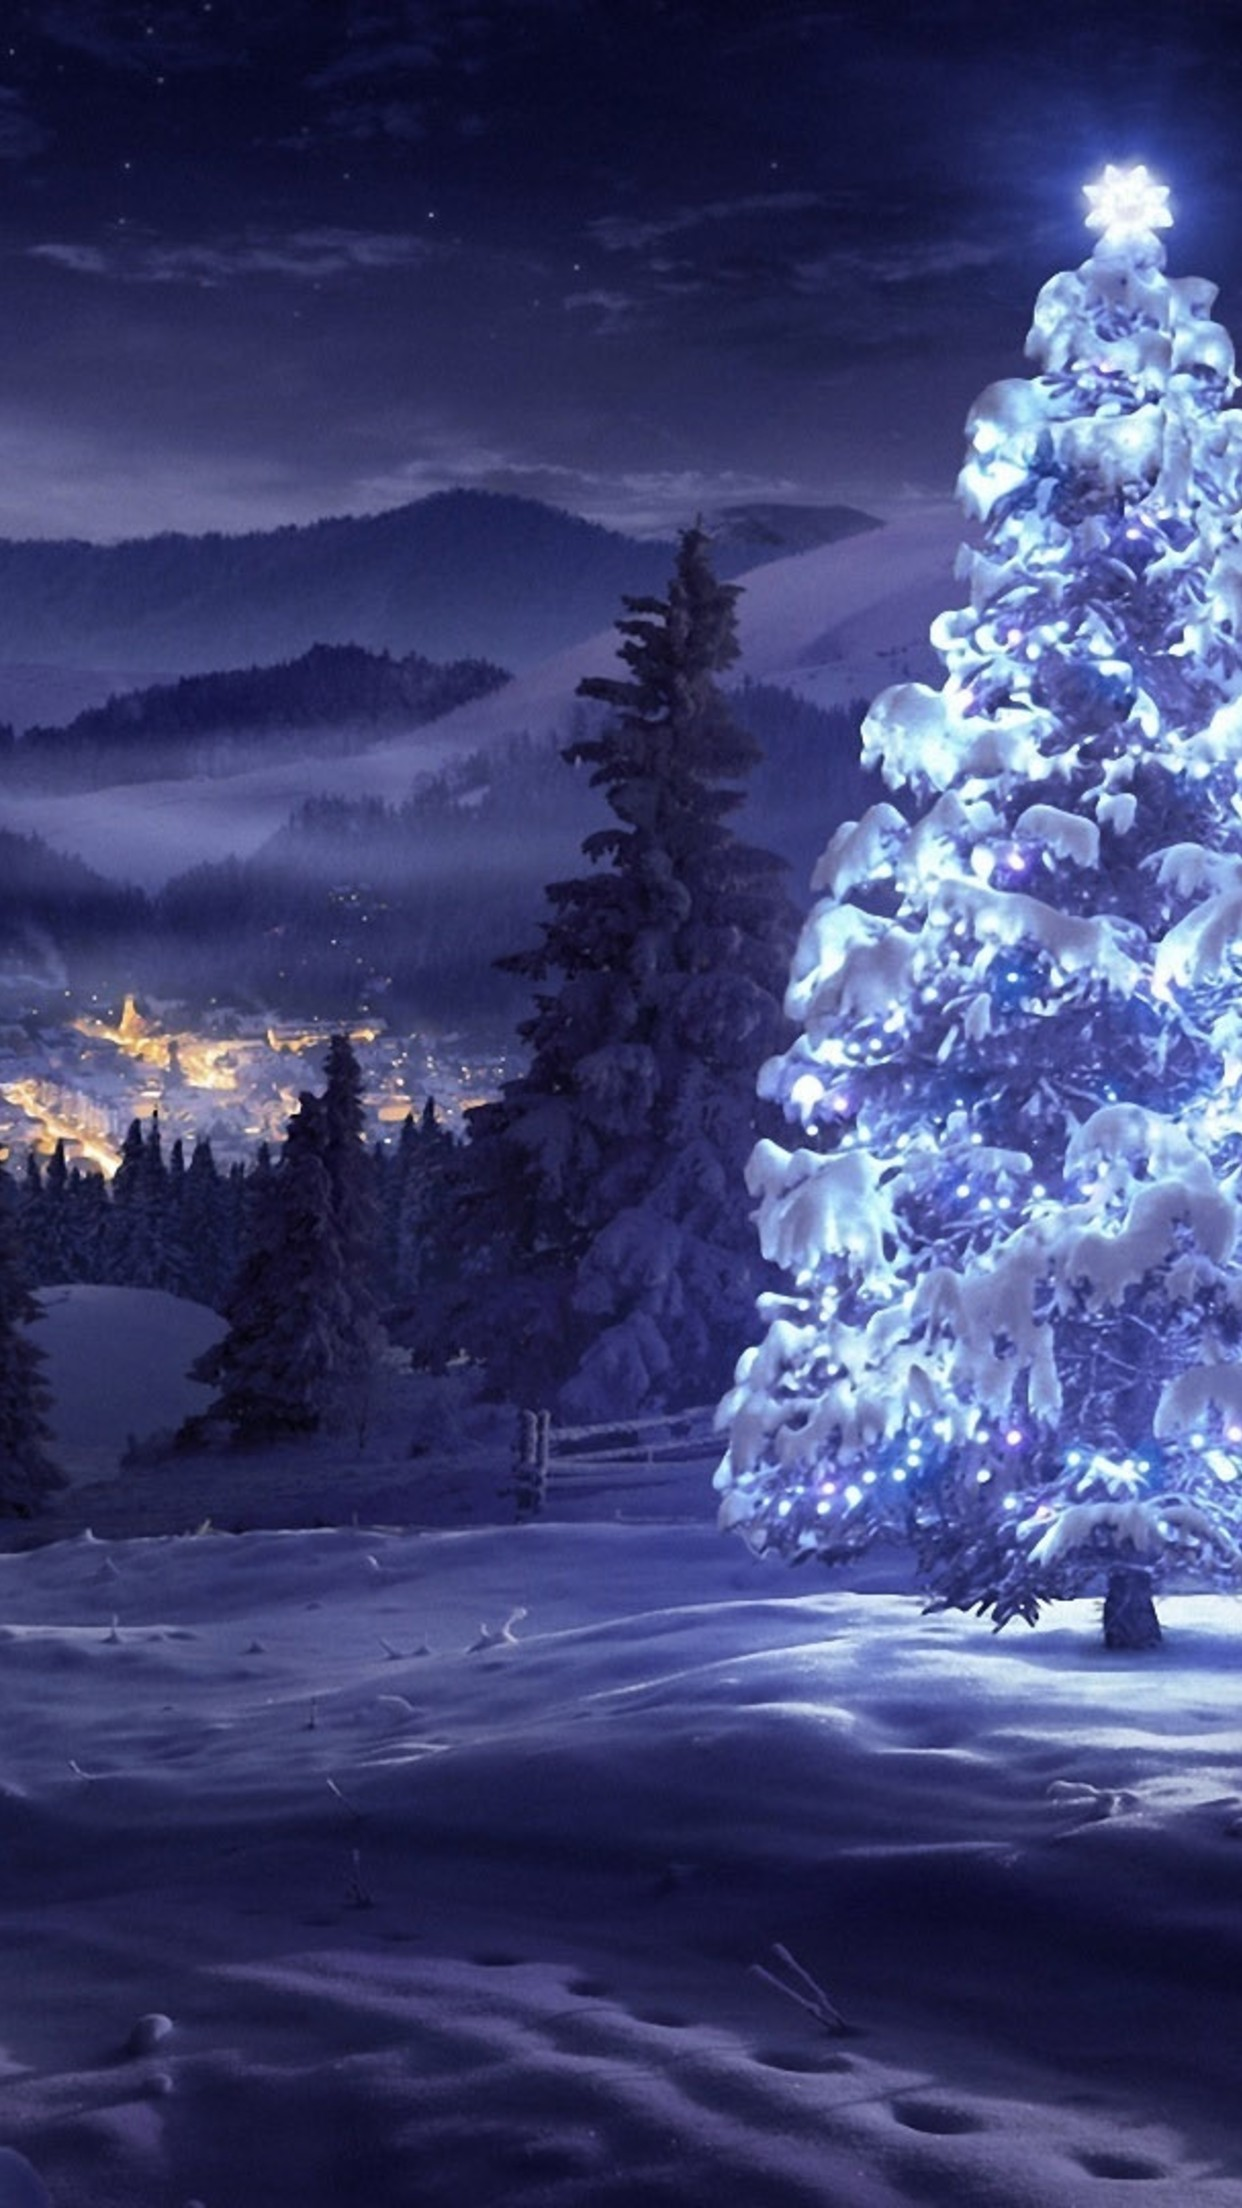 White-Christmas-tree-in-the-nature-HD-snowy-wallpaper_1242x2208